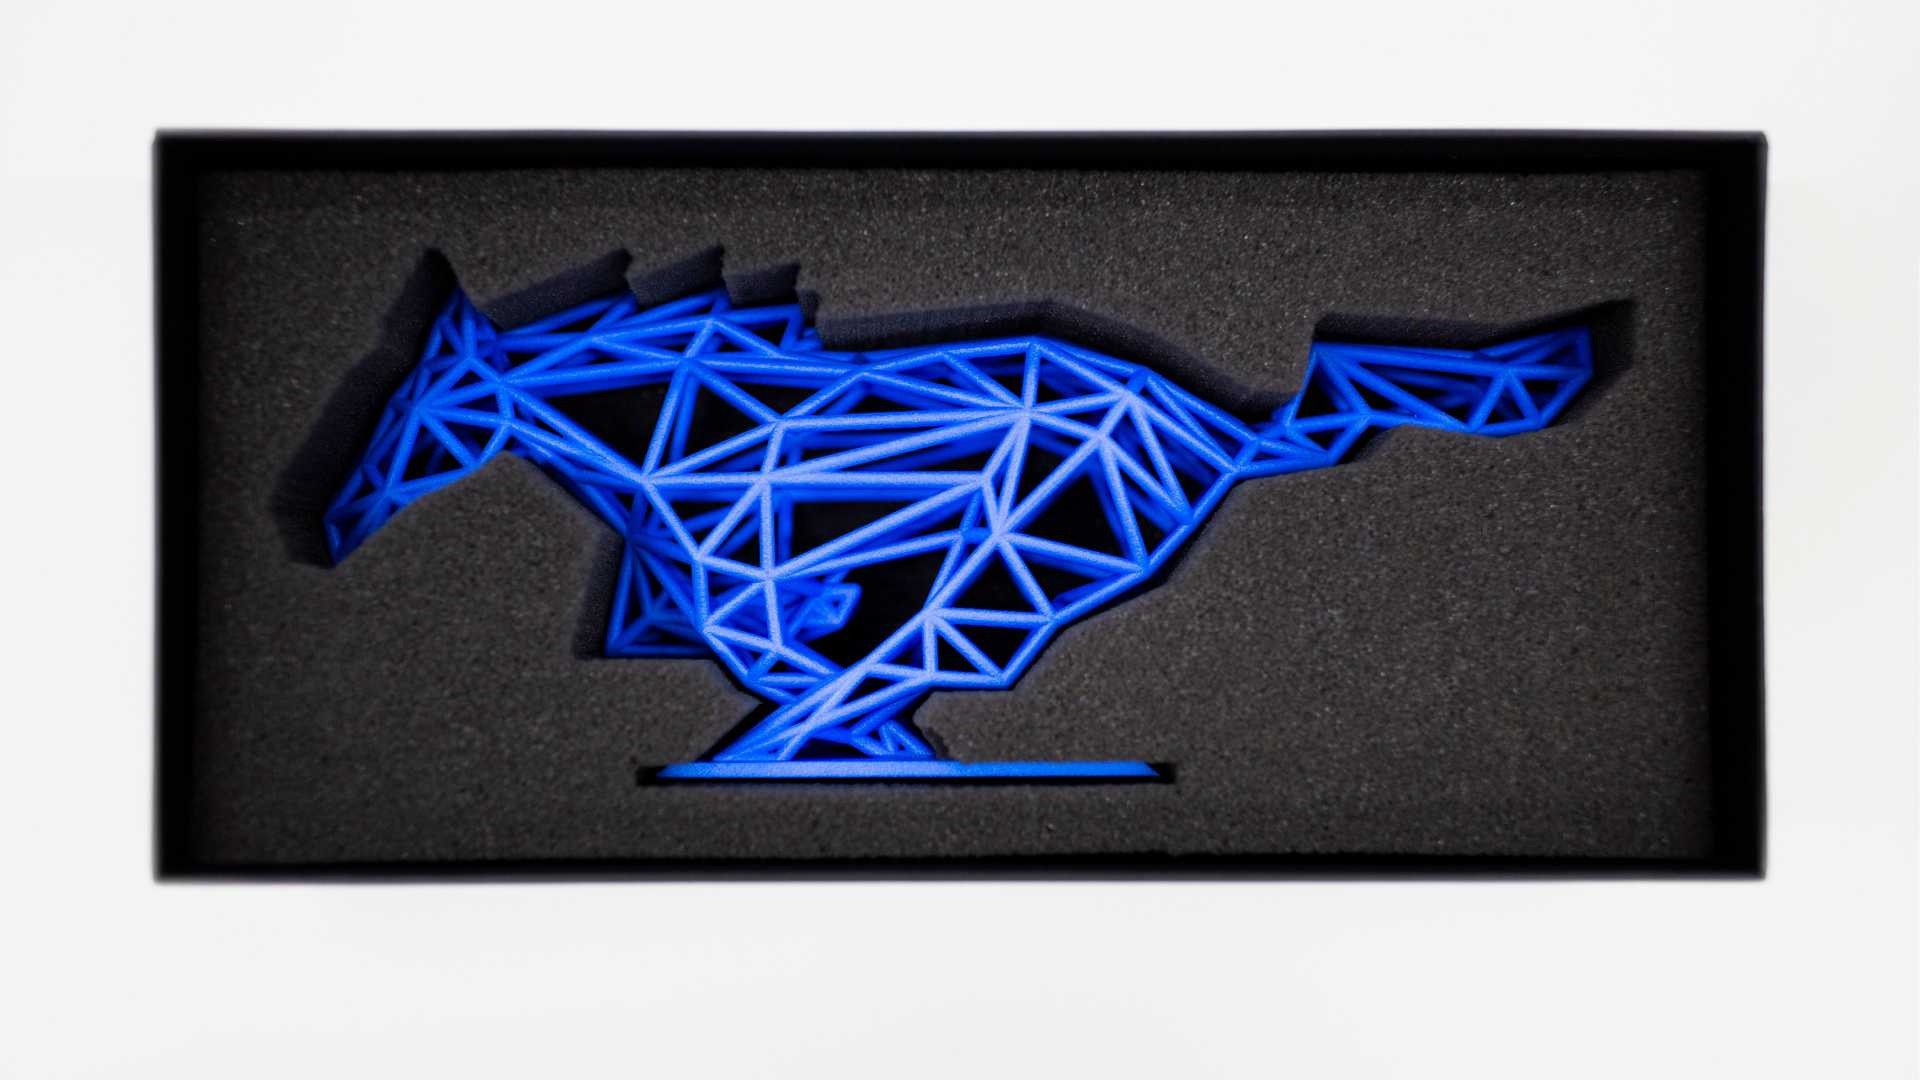 Ford_Mustang_Mach-E_3D-Printed_Sculpture-0001